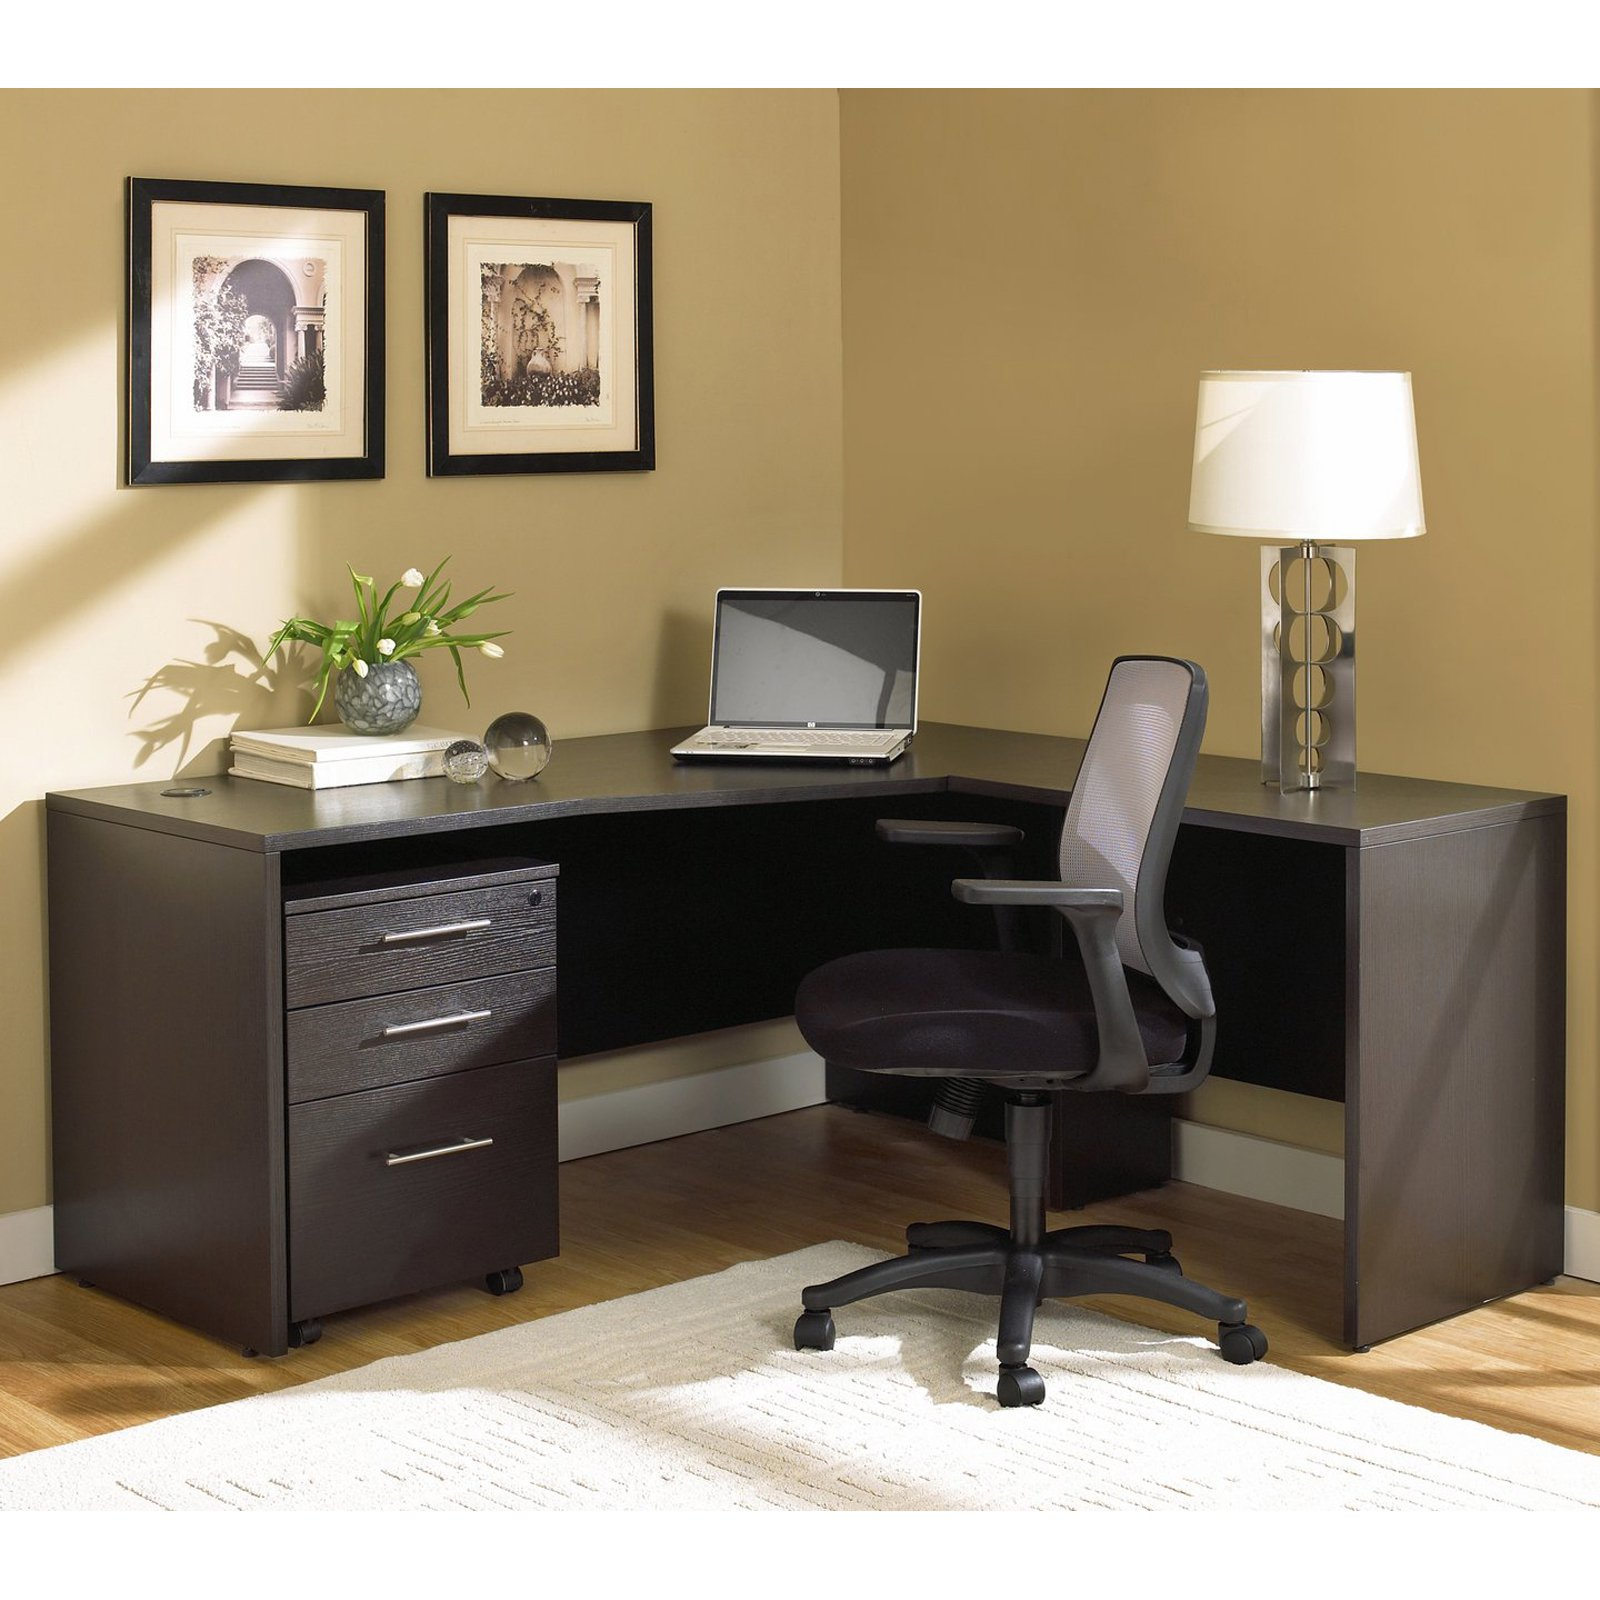 Jesper Office 100 Series L Shaped Desk With Mobile Pedestal   Cherry    Walmart.com